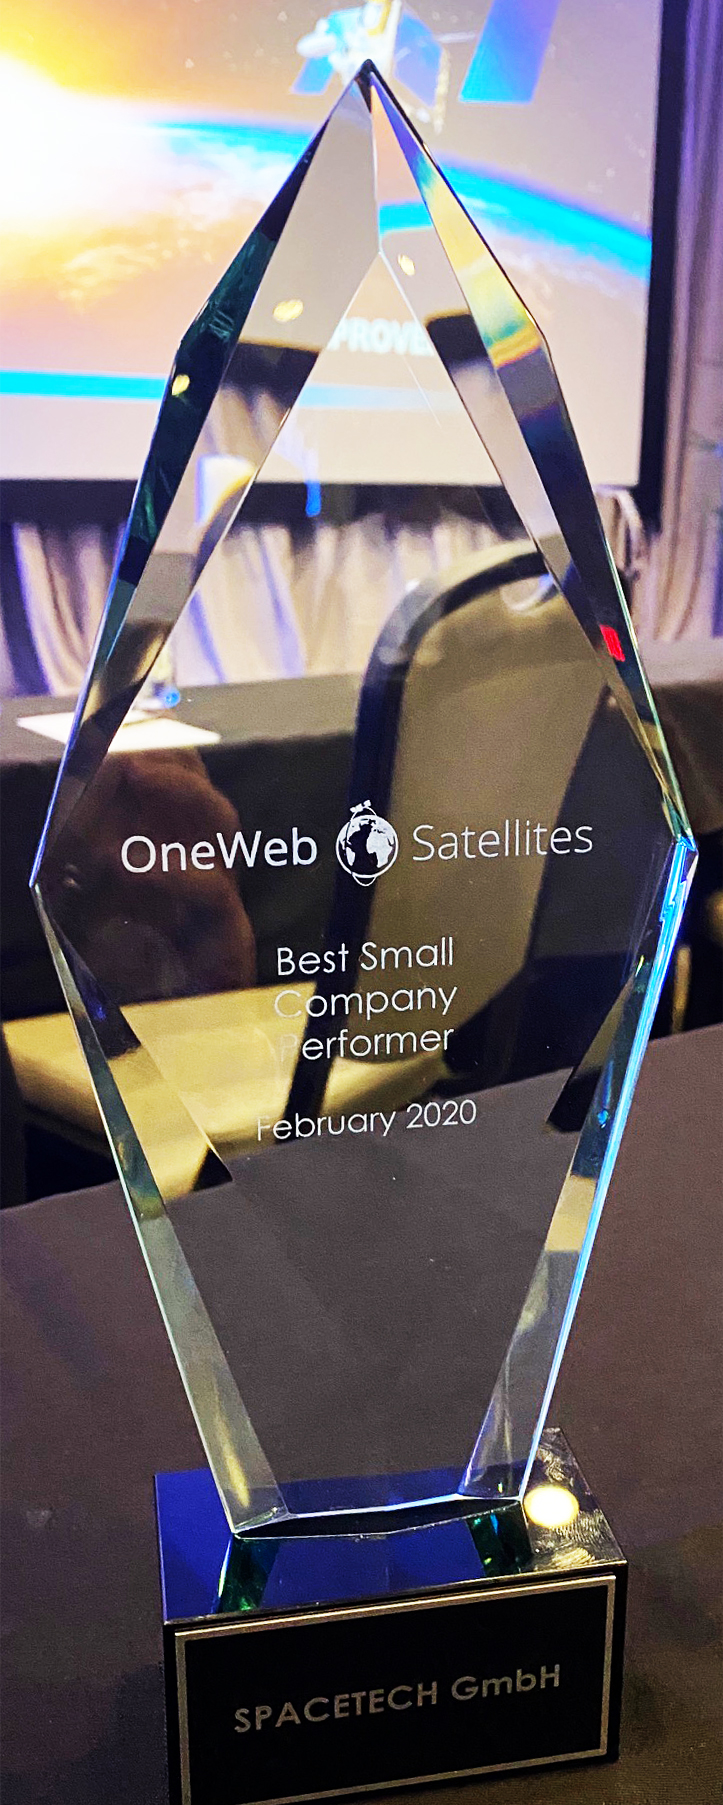 SpaceTech airbus oneweb best small company performer award